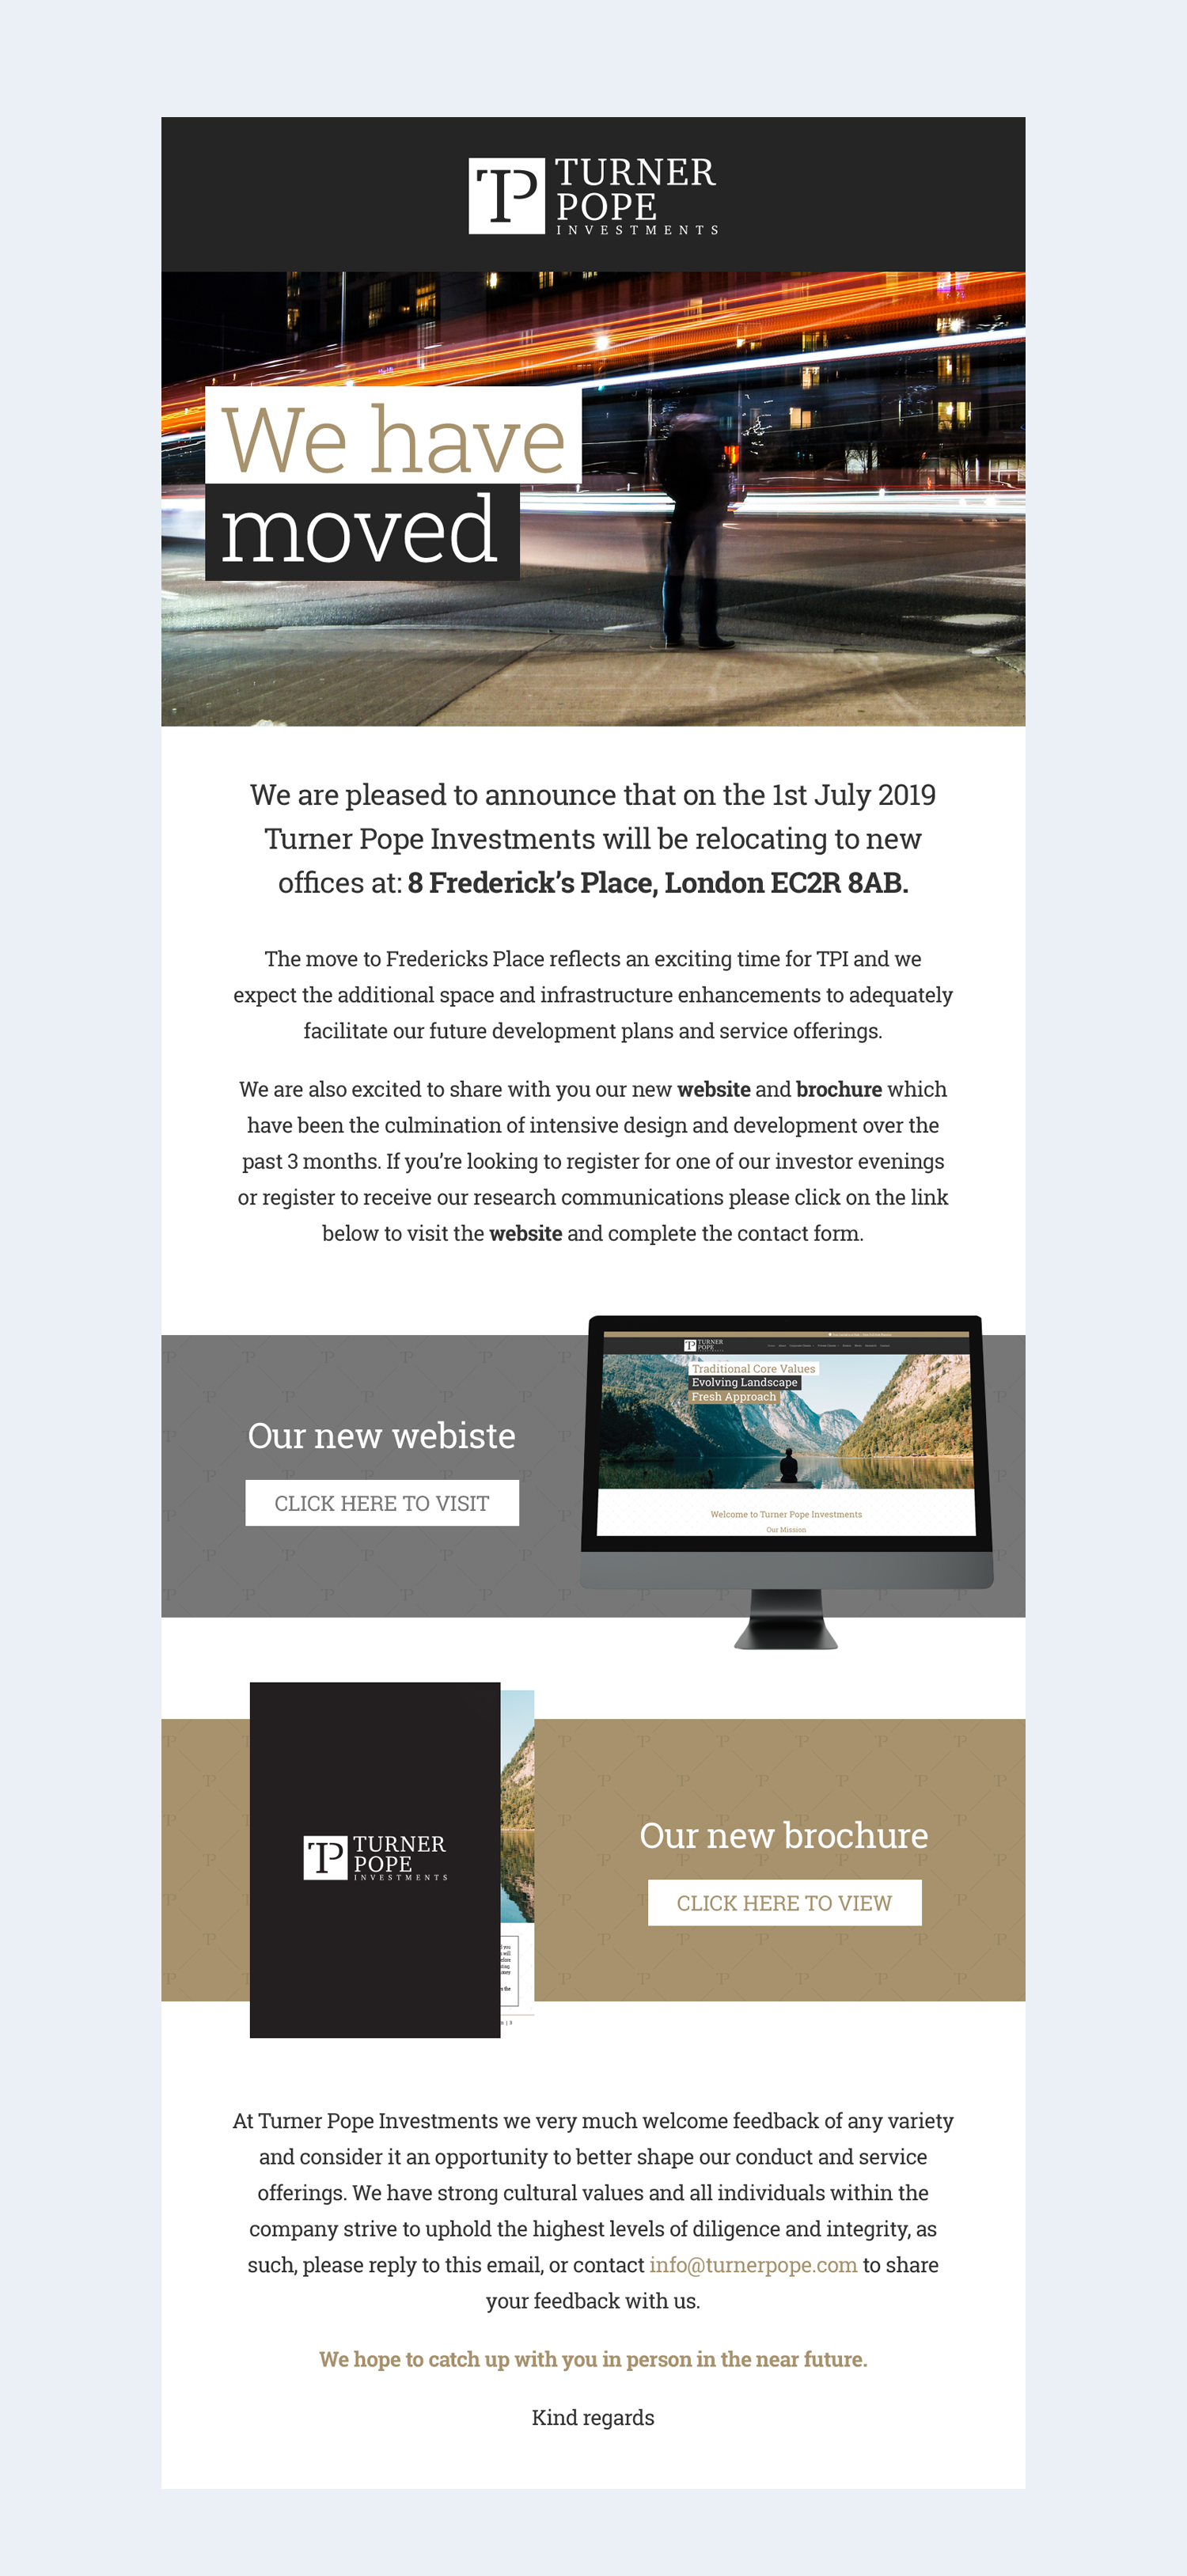 Turner Pope Investments | We Have Moved Full Newsletter